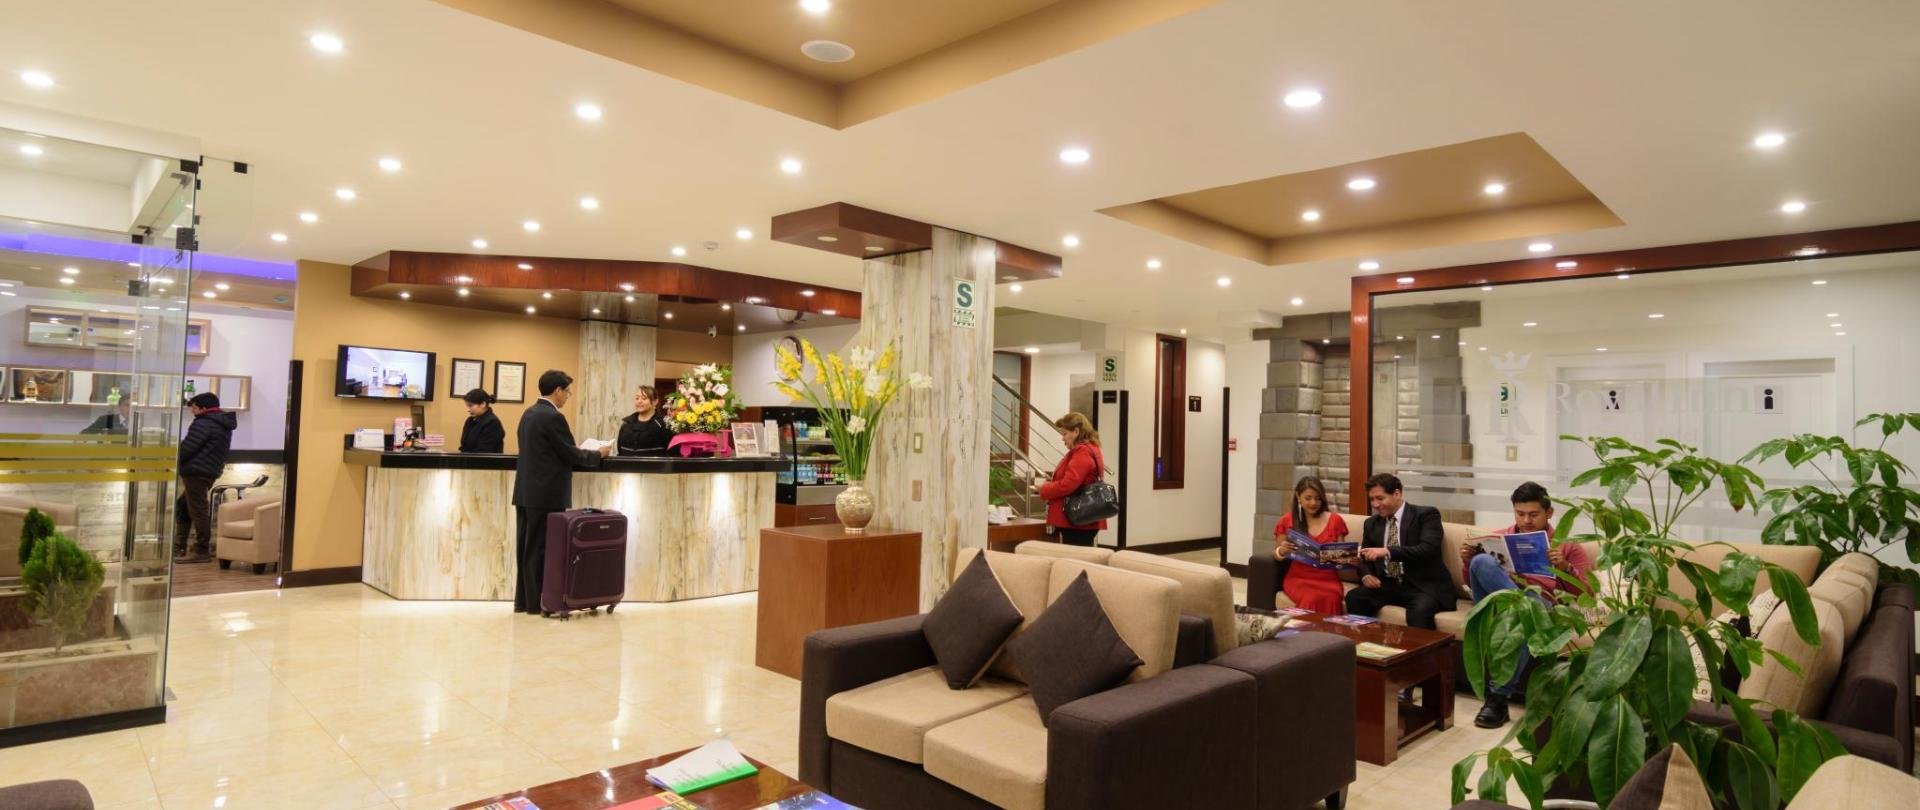 Готель Royal Inn Cusco